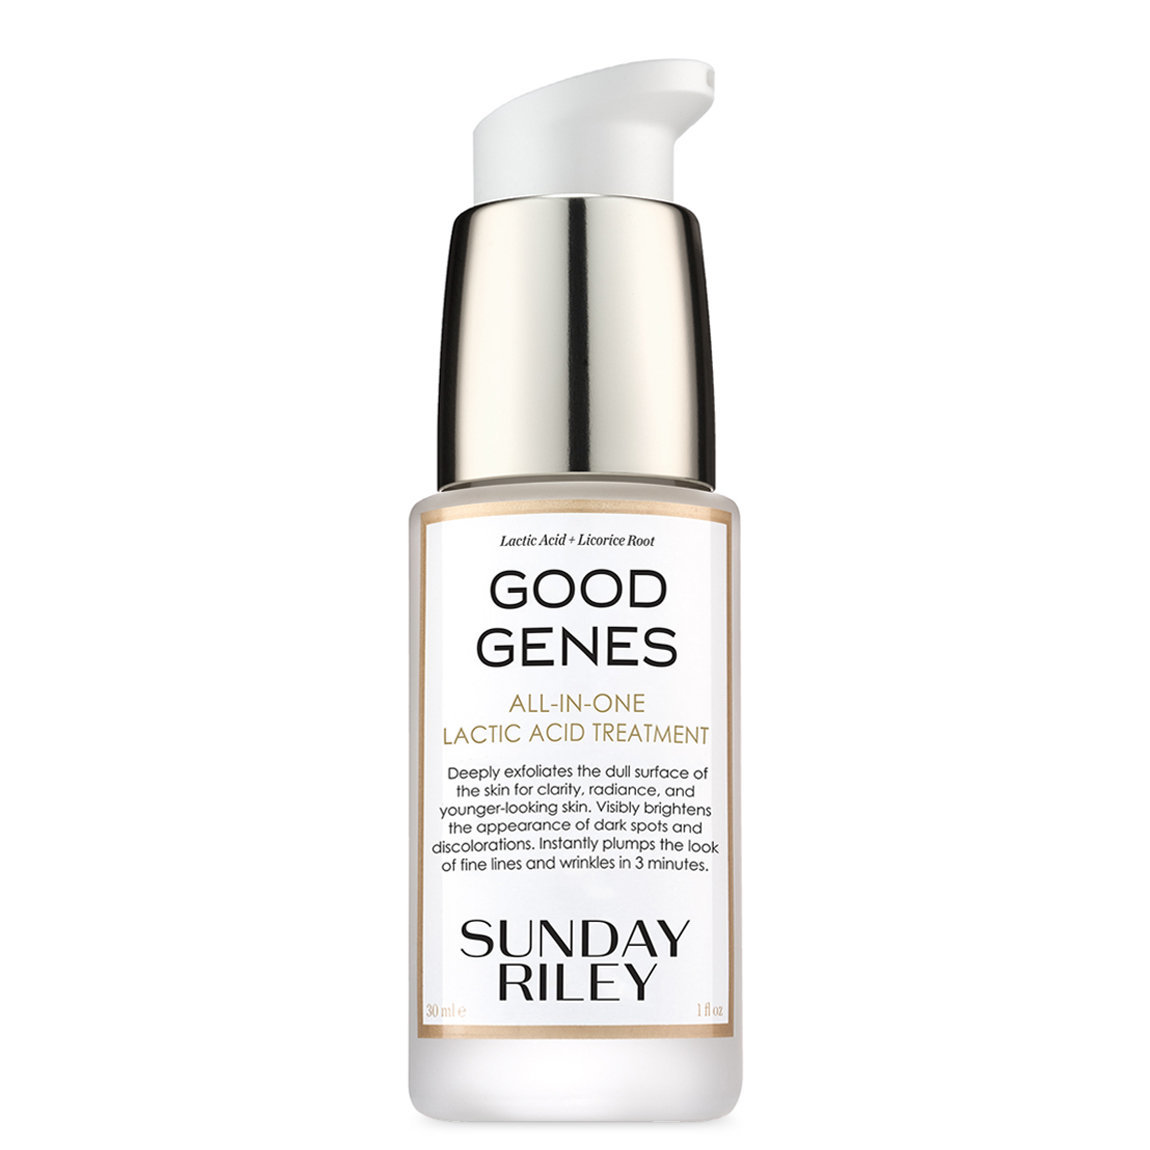 Sunday Riley Good Genes All-In-One Lactic Acid Treatment 30 ml alternative view 1 - product swatch.